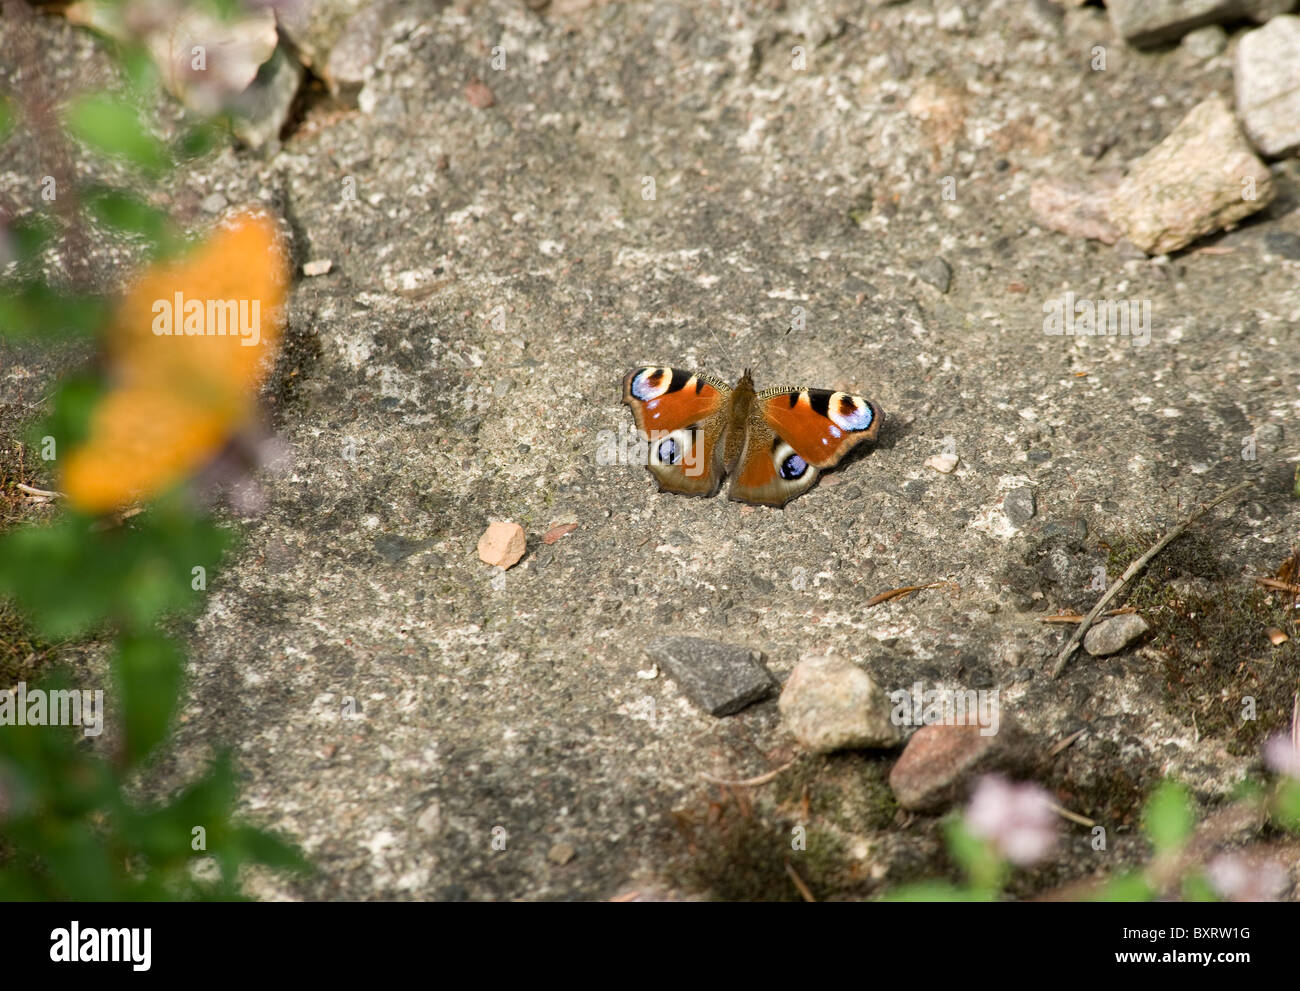 A European peacock (butterfly) that's landed on a stone patio eyespots are visible - Stock Image